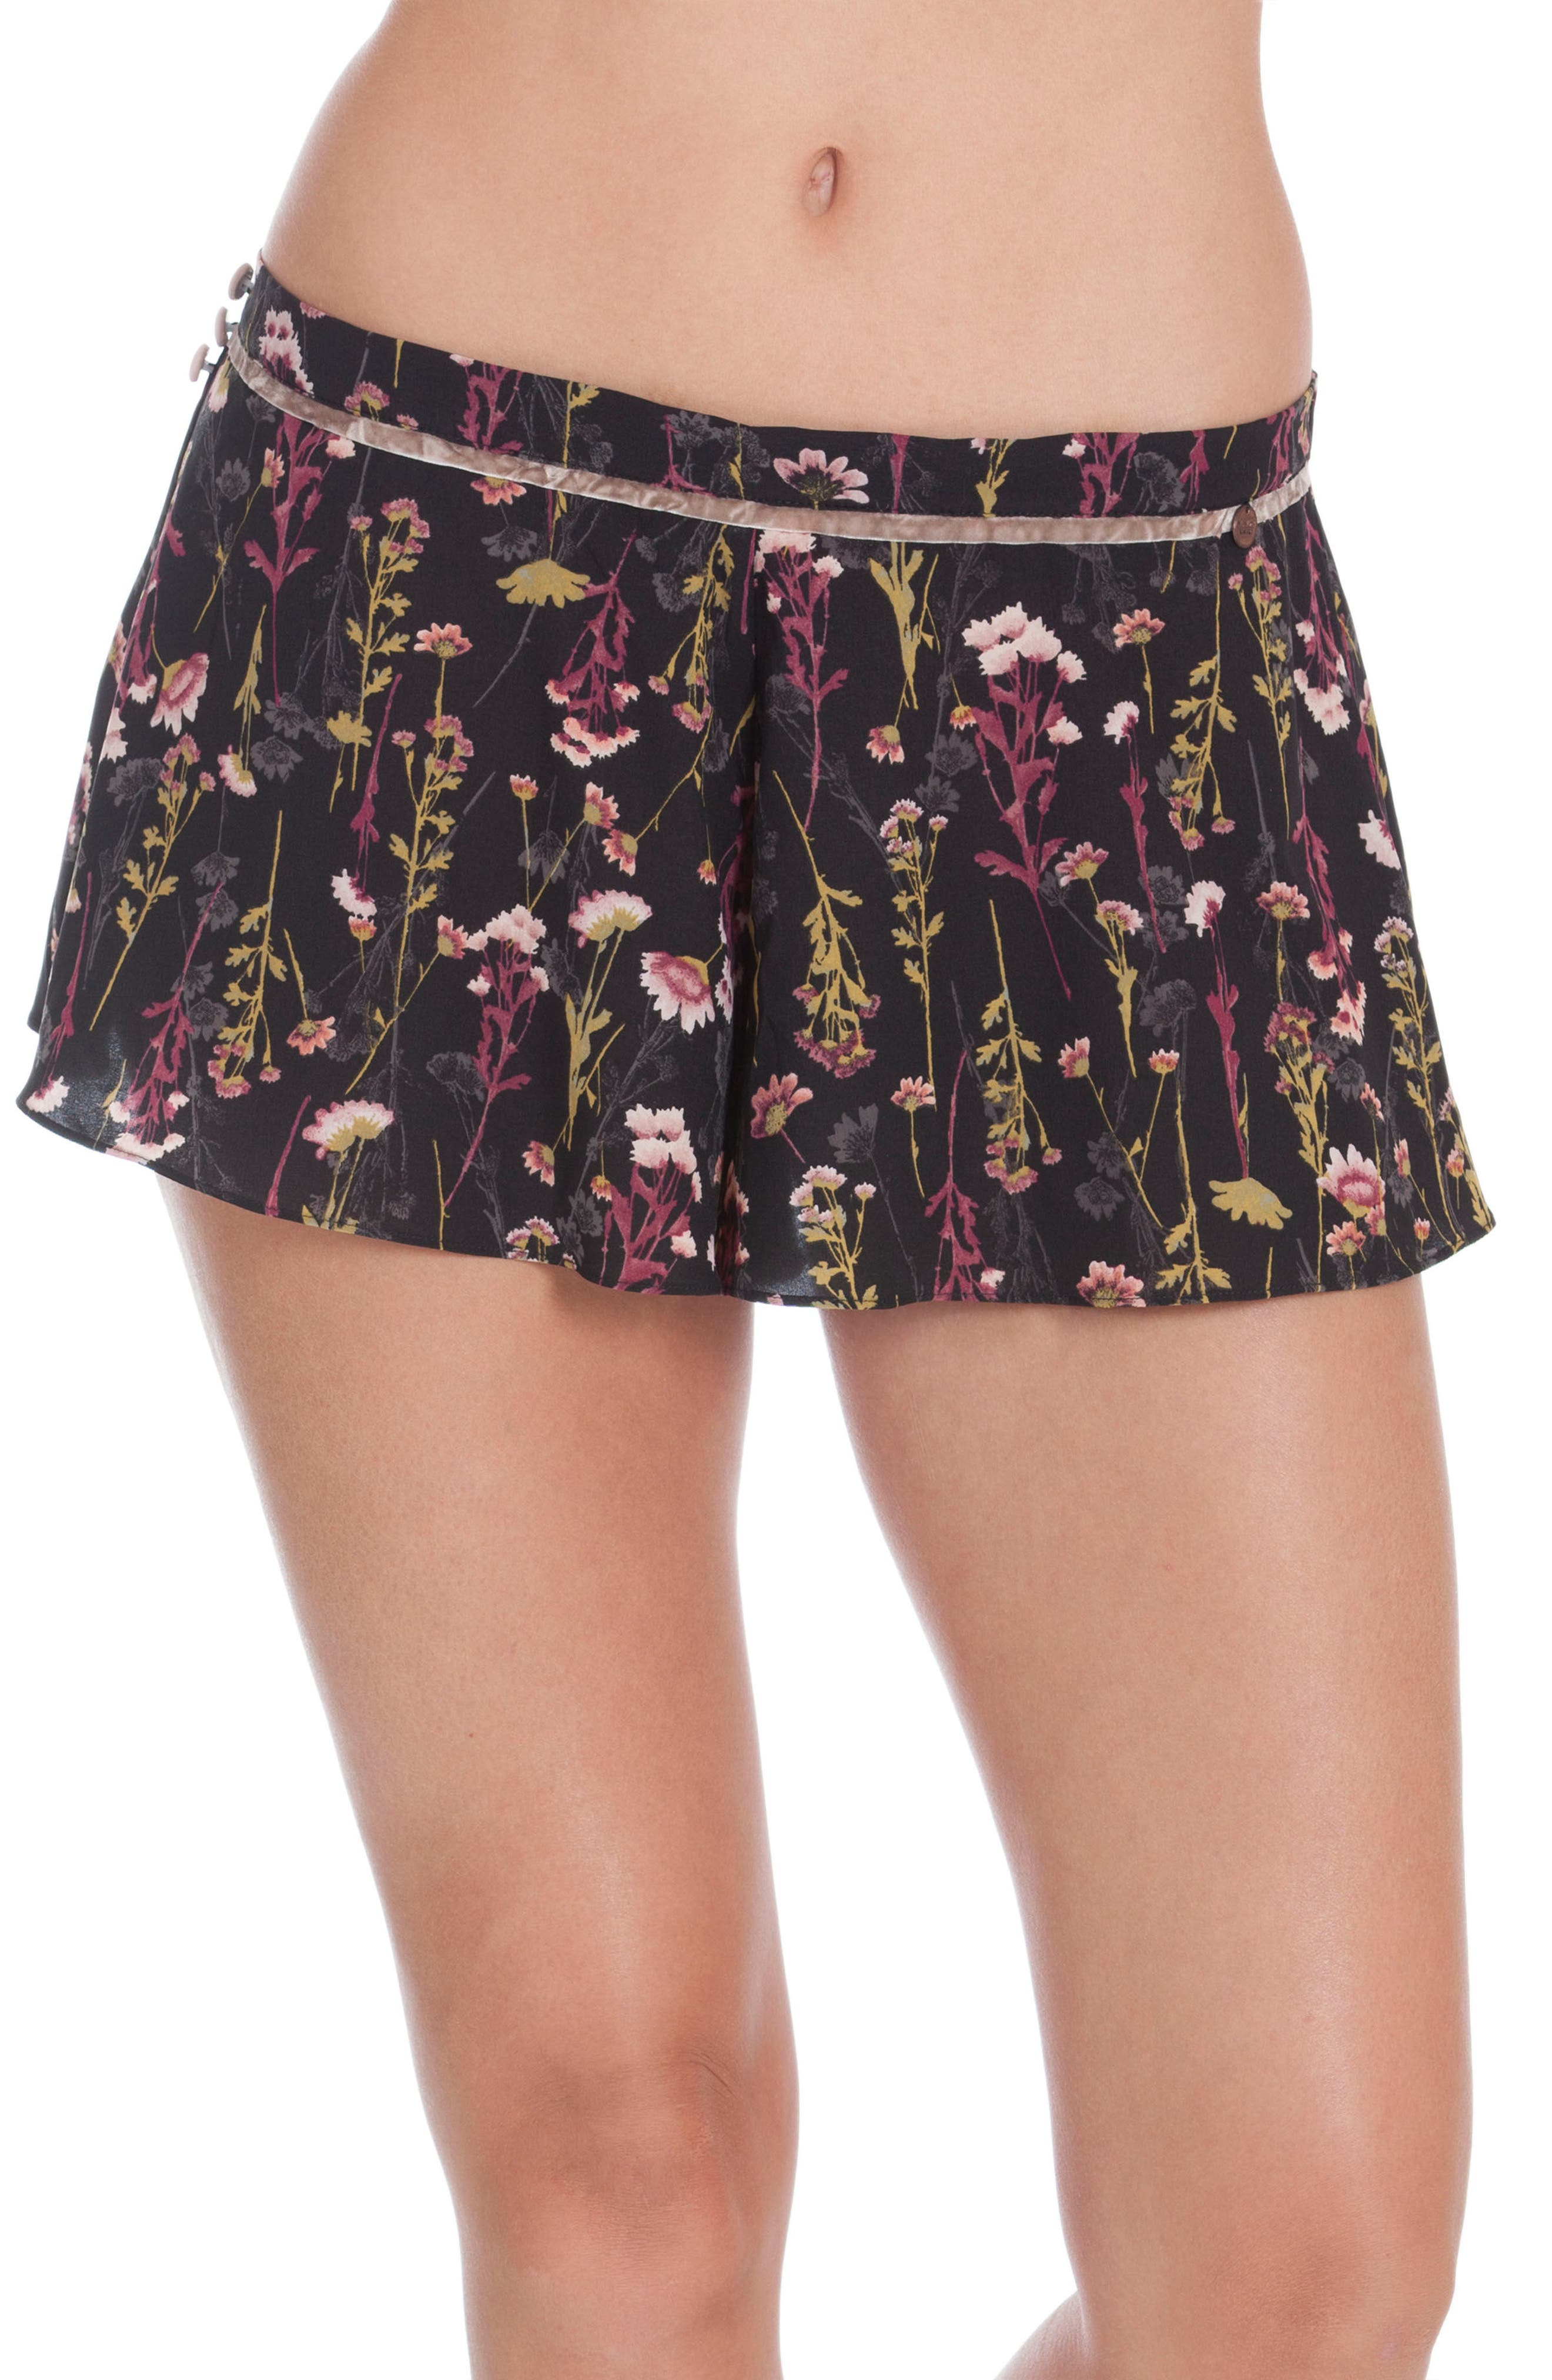 Floral Print Lounge Shorts,                         Main,                         color, 001